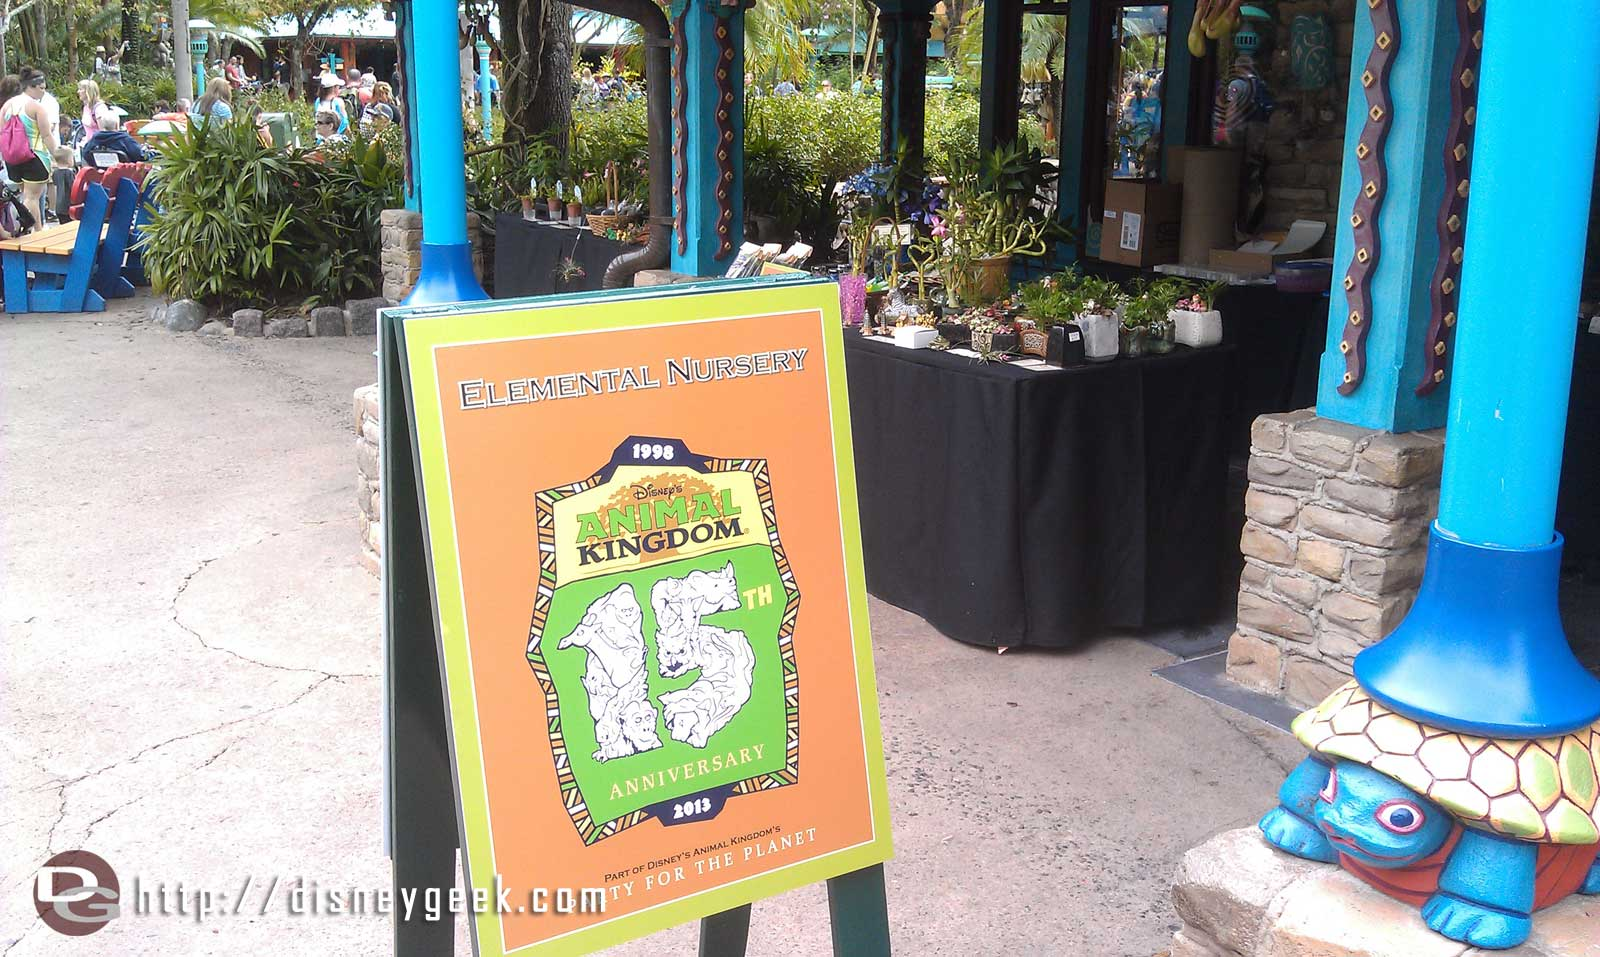 On Discovery Island there are vendor tabled/displays.  Here is one for Elemental Nusery #DAK15